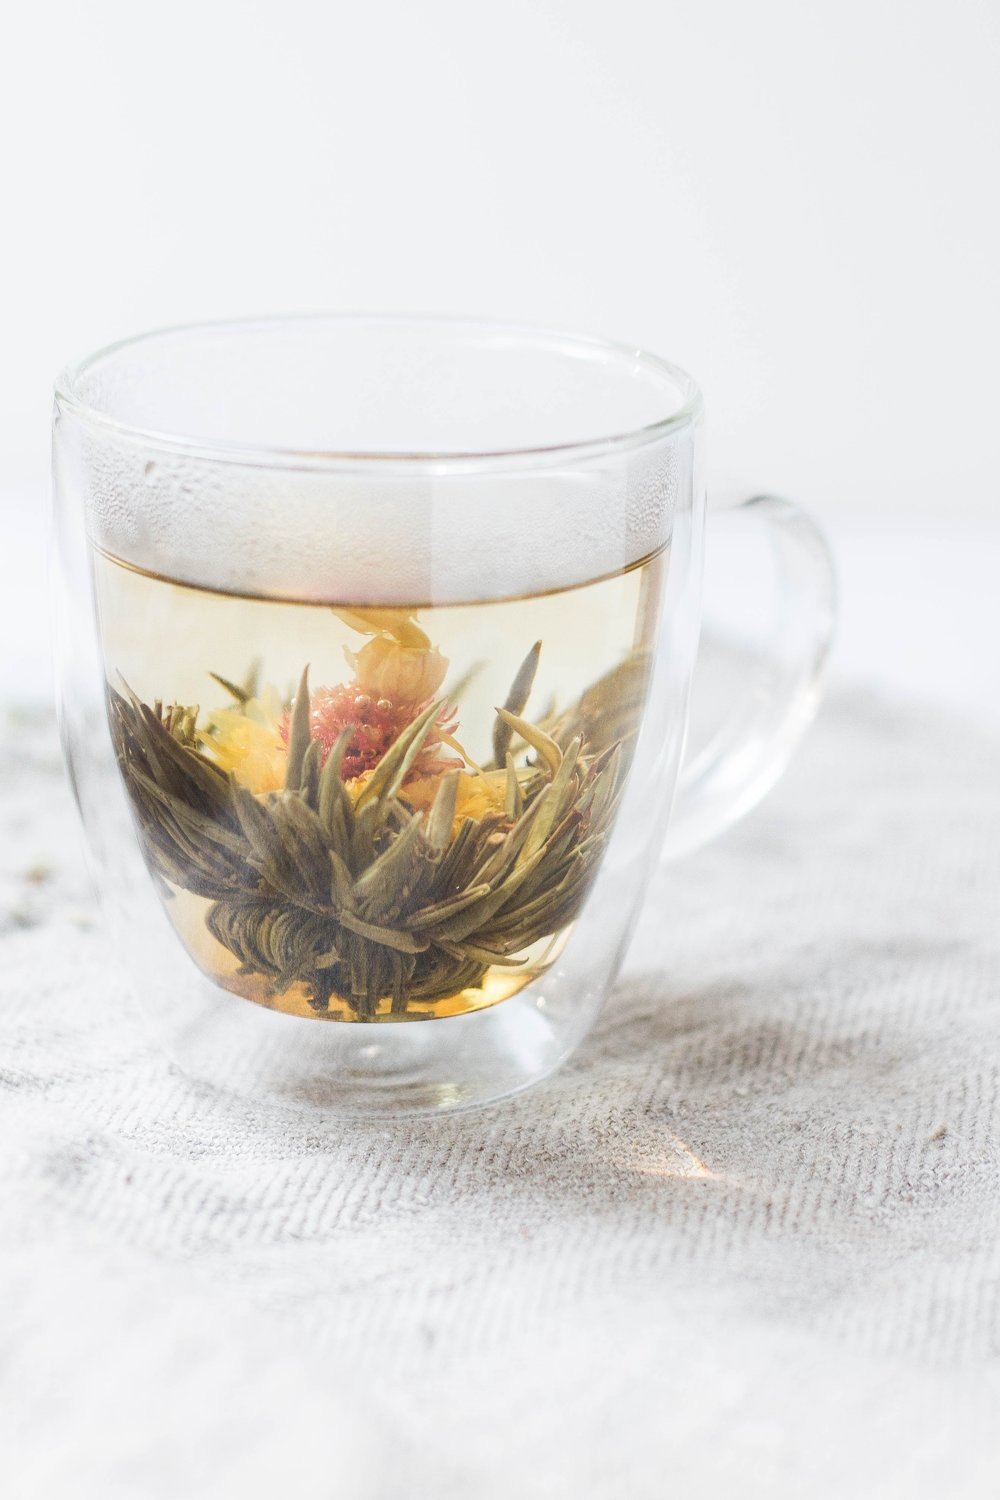 make a cup of herbal tea